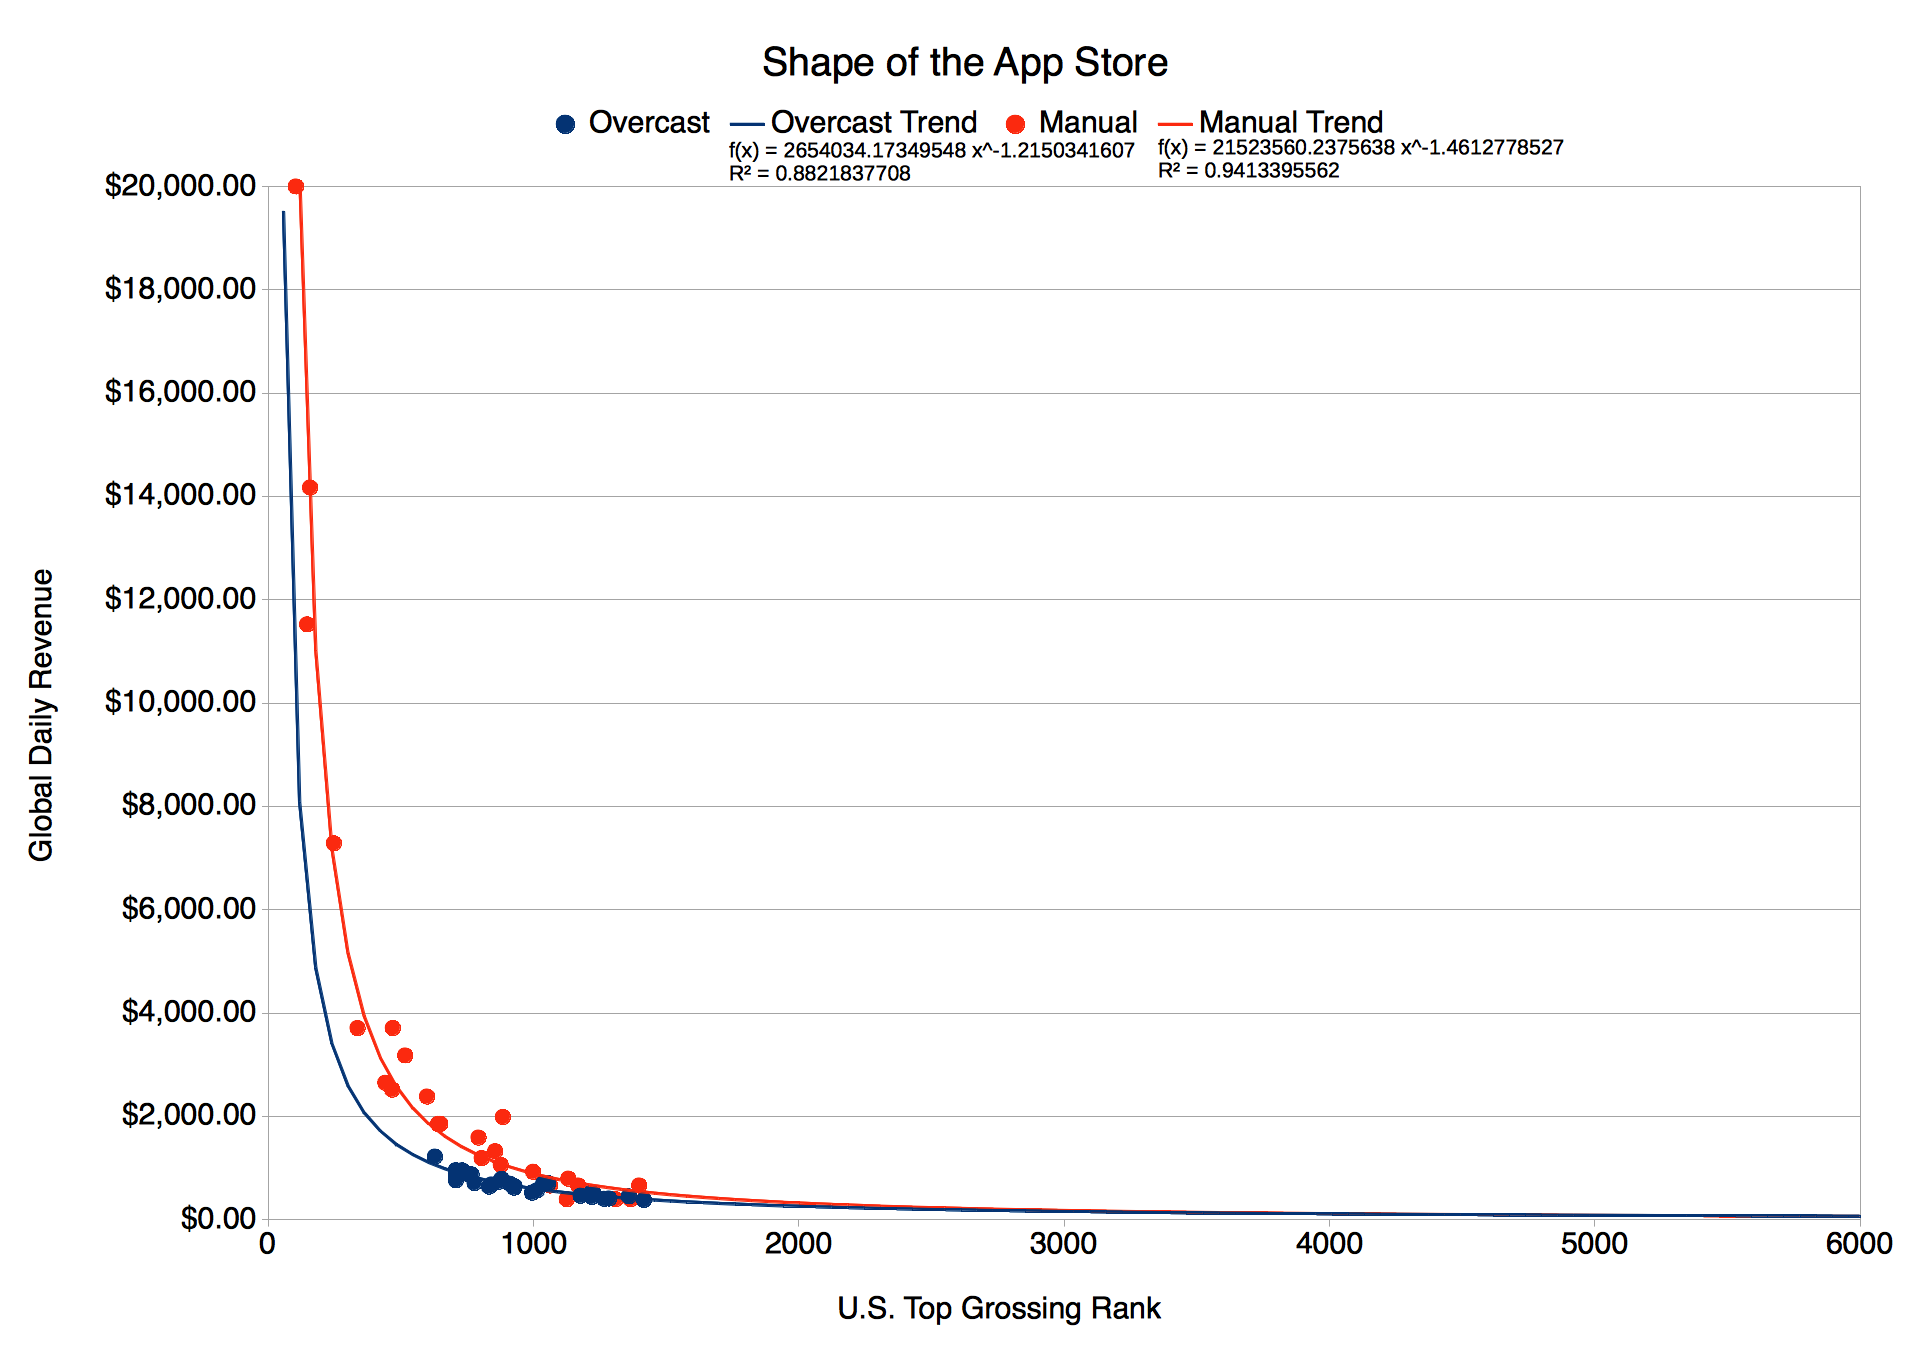 The Shape of the App Store, with Manual Revenue